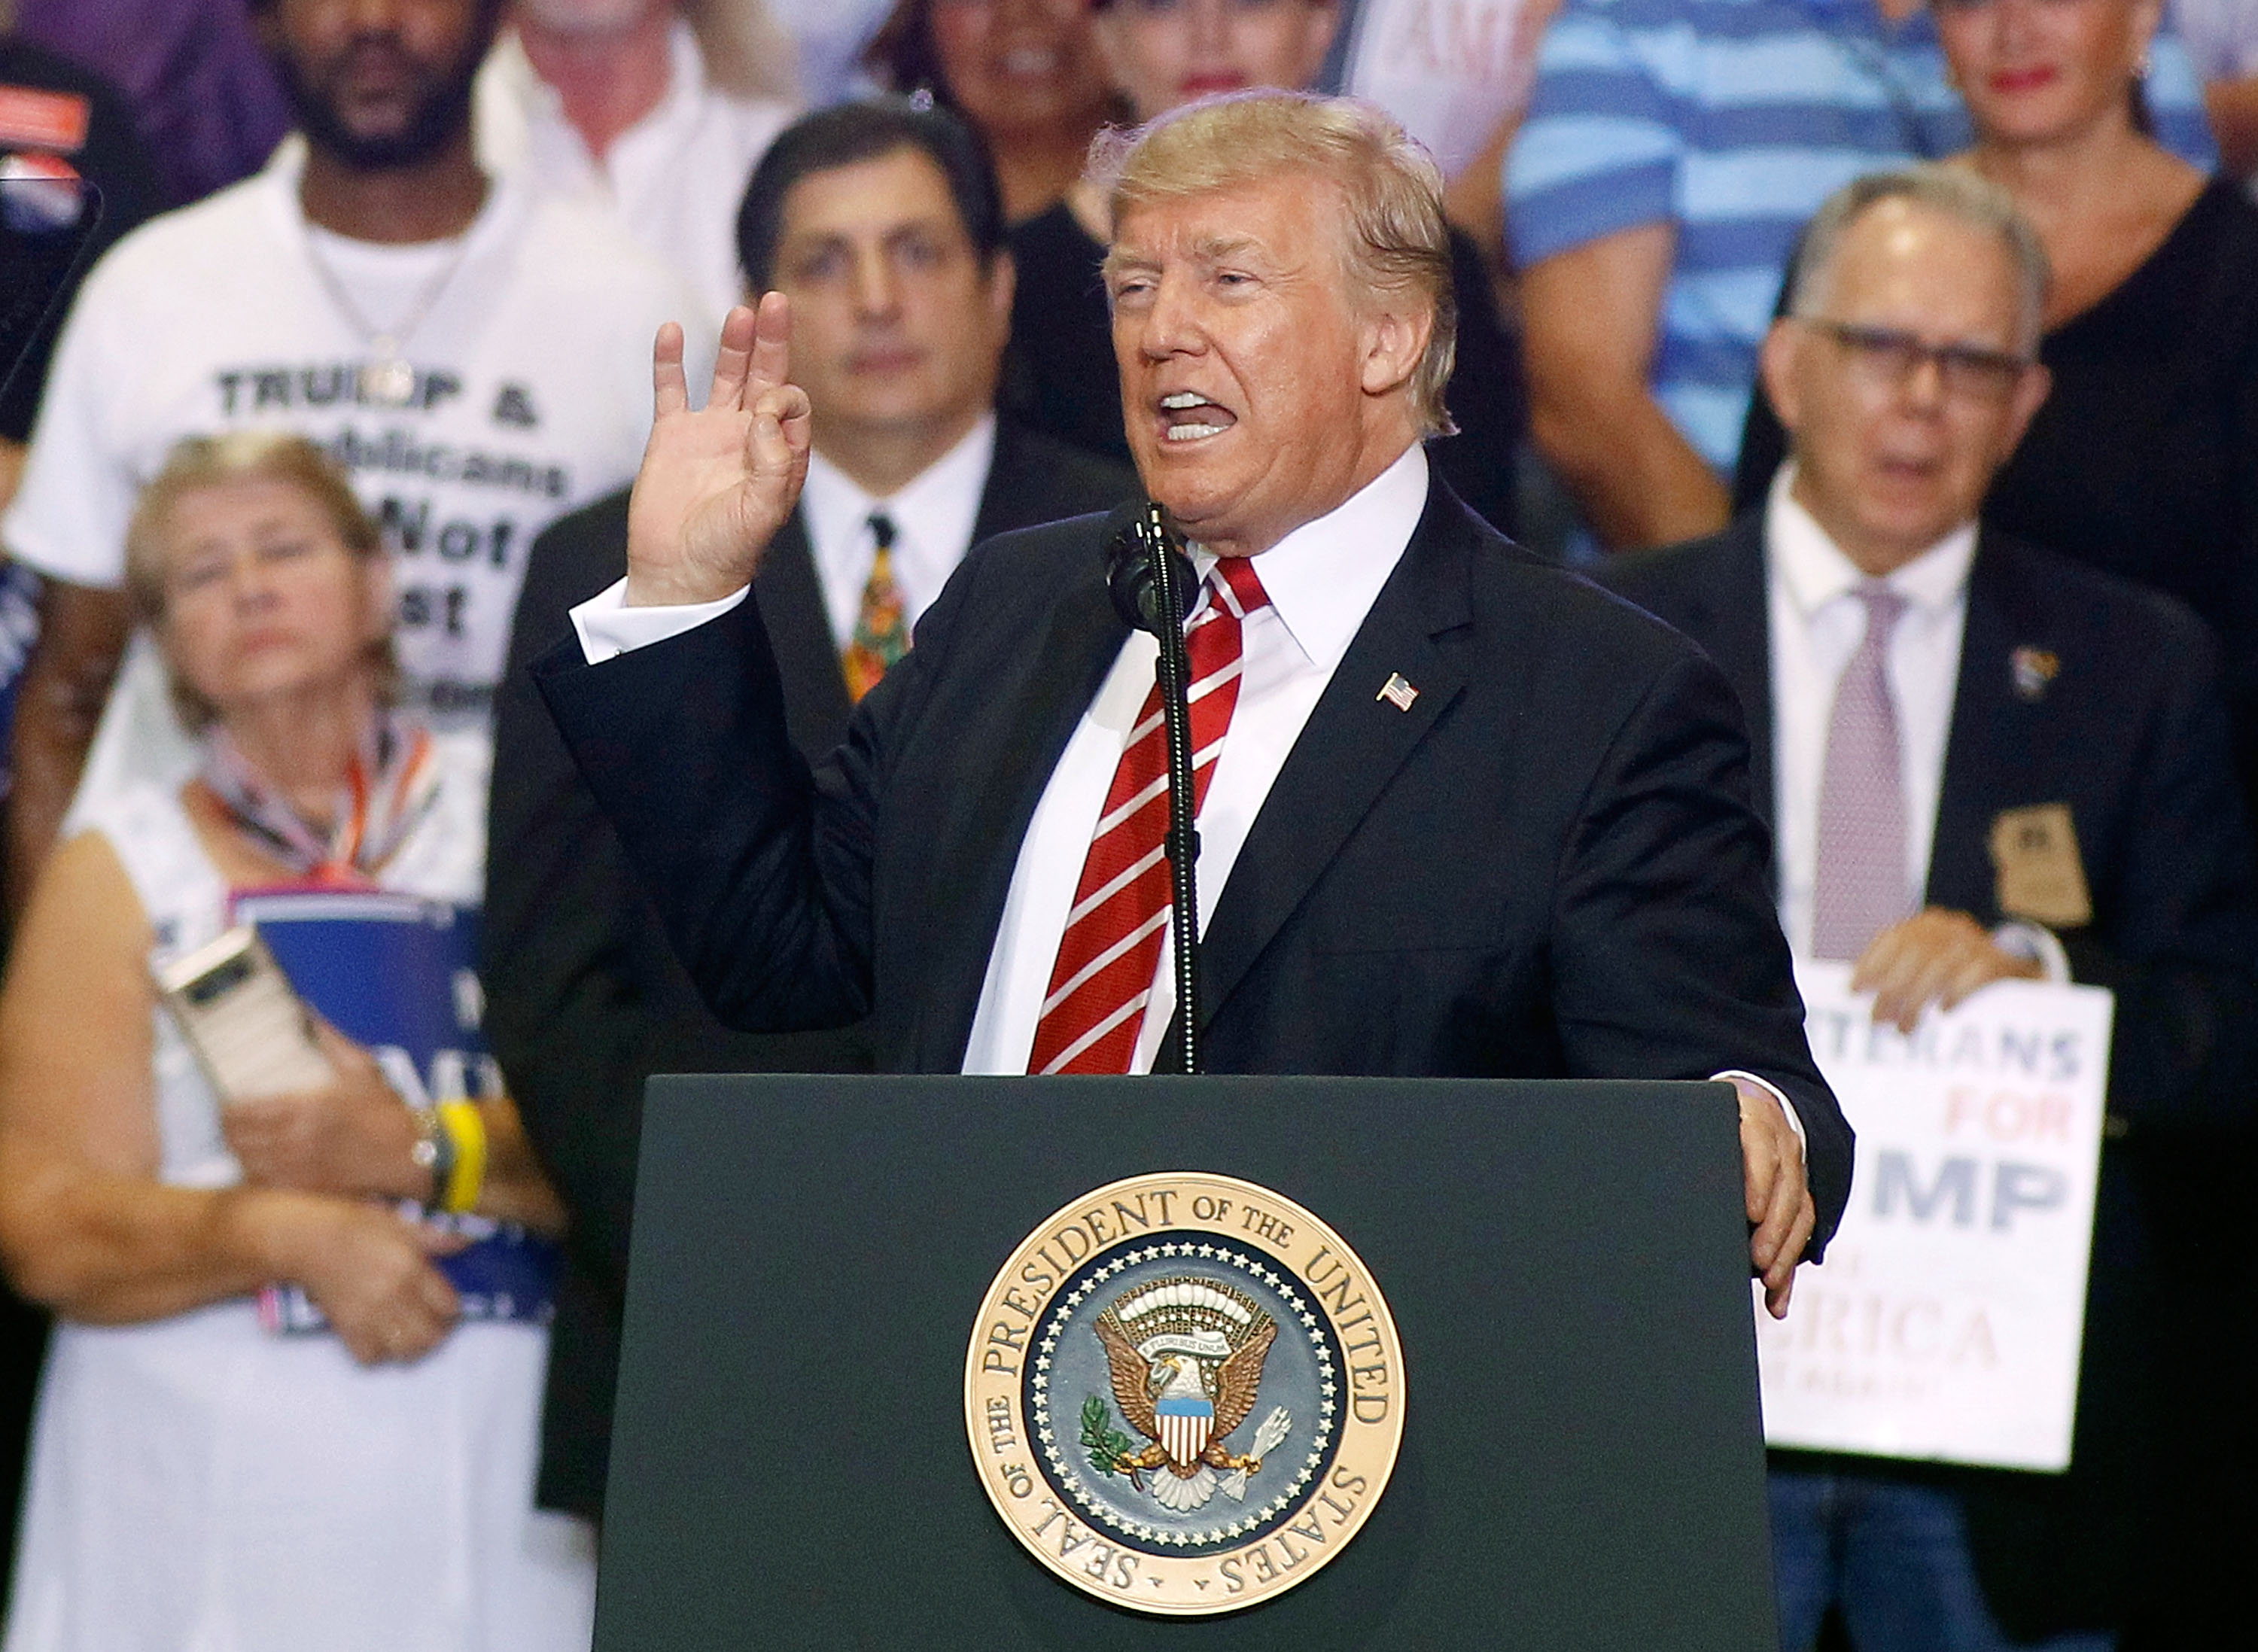 President Donald Trump speaks to a crowd of supporters at the Phoenix Convention Center during a rally on Aug. 22, 2017 in Phoenix, Arizona.